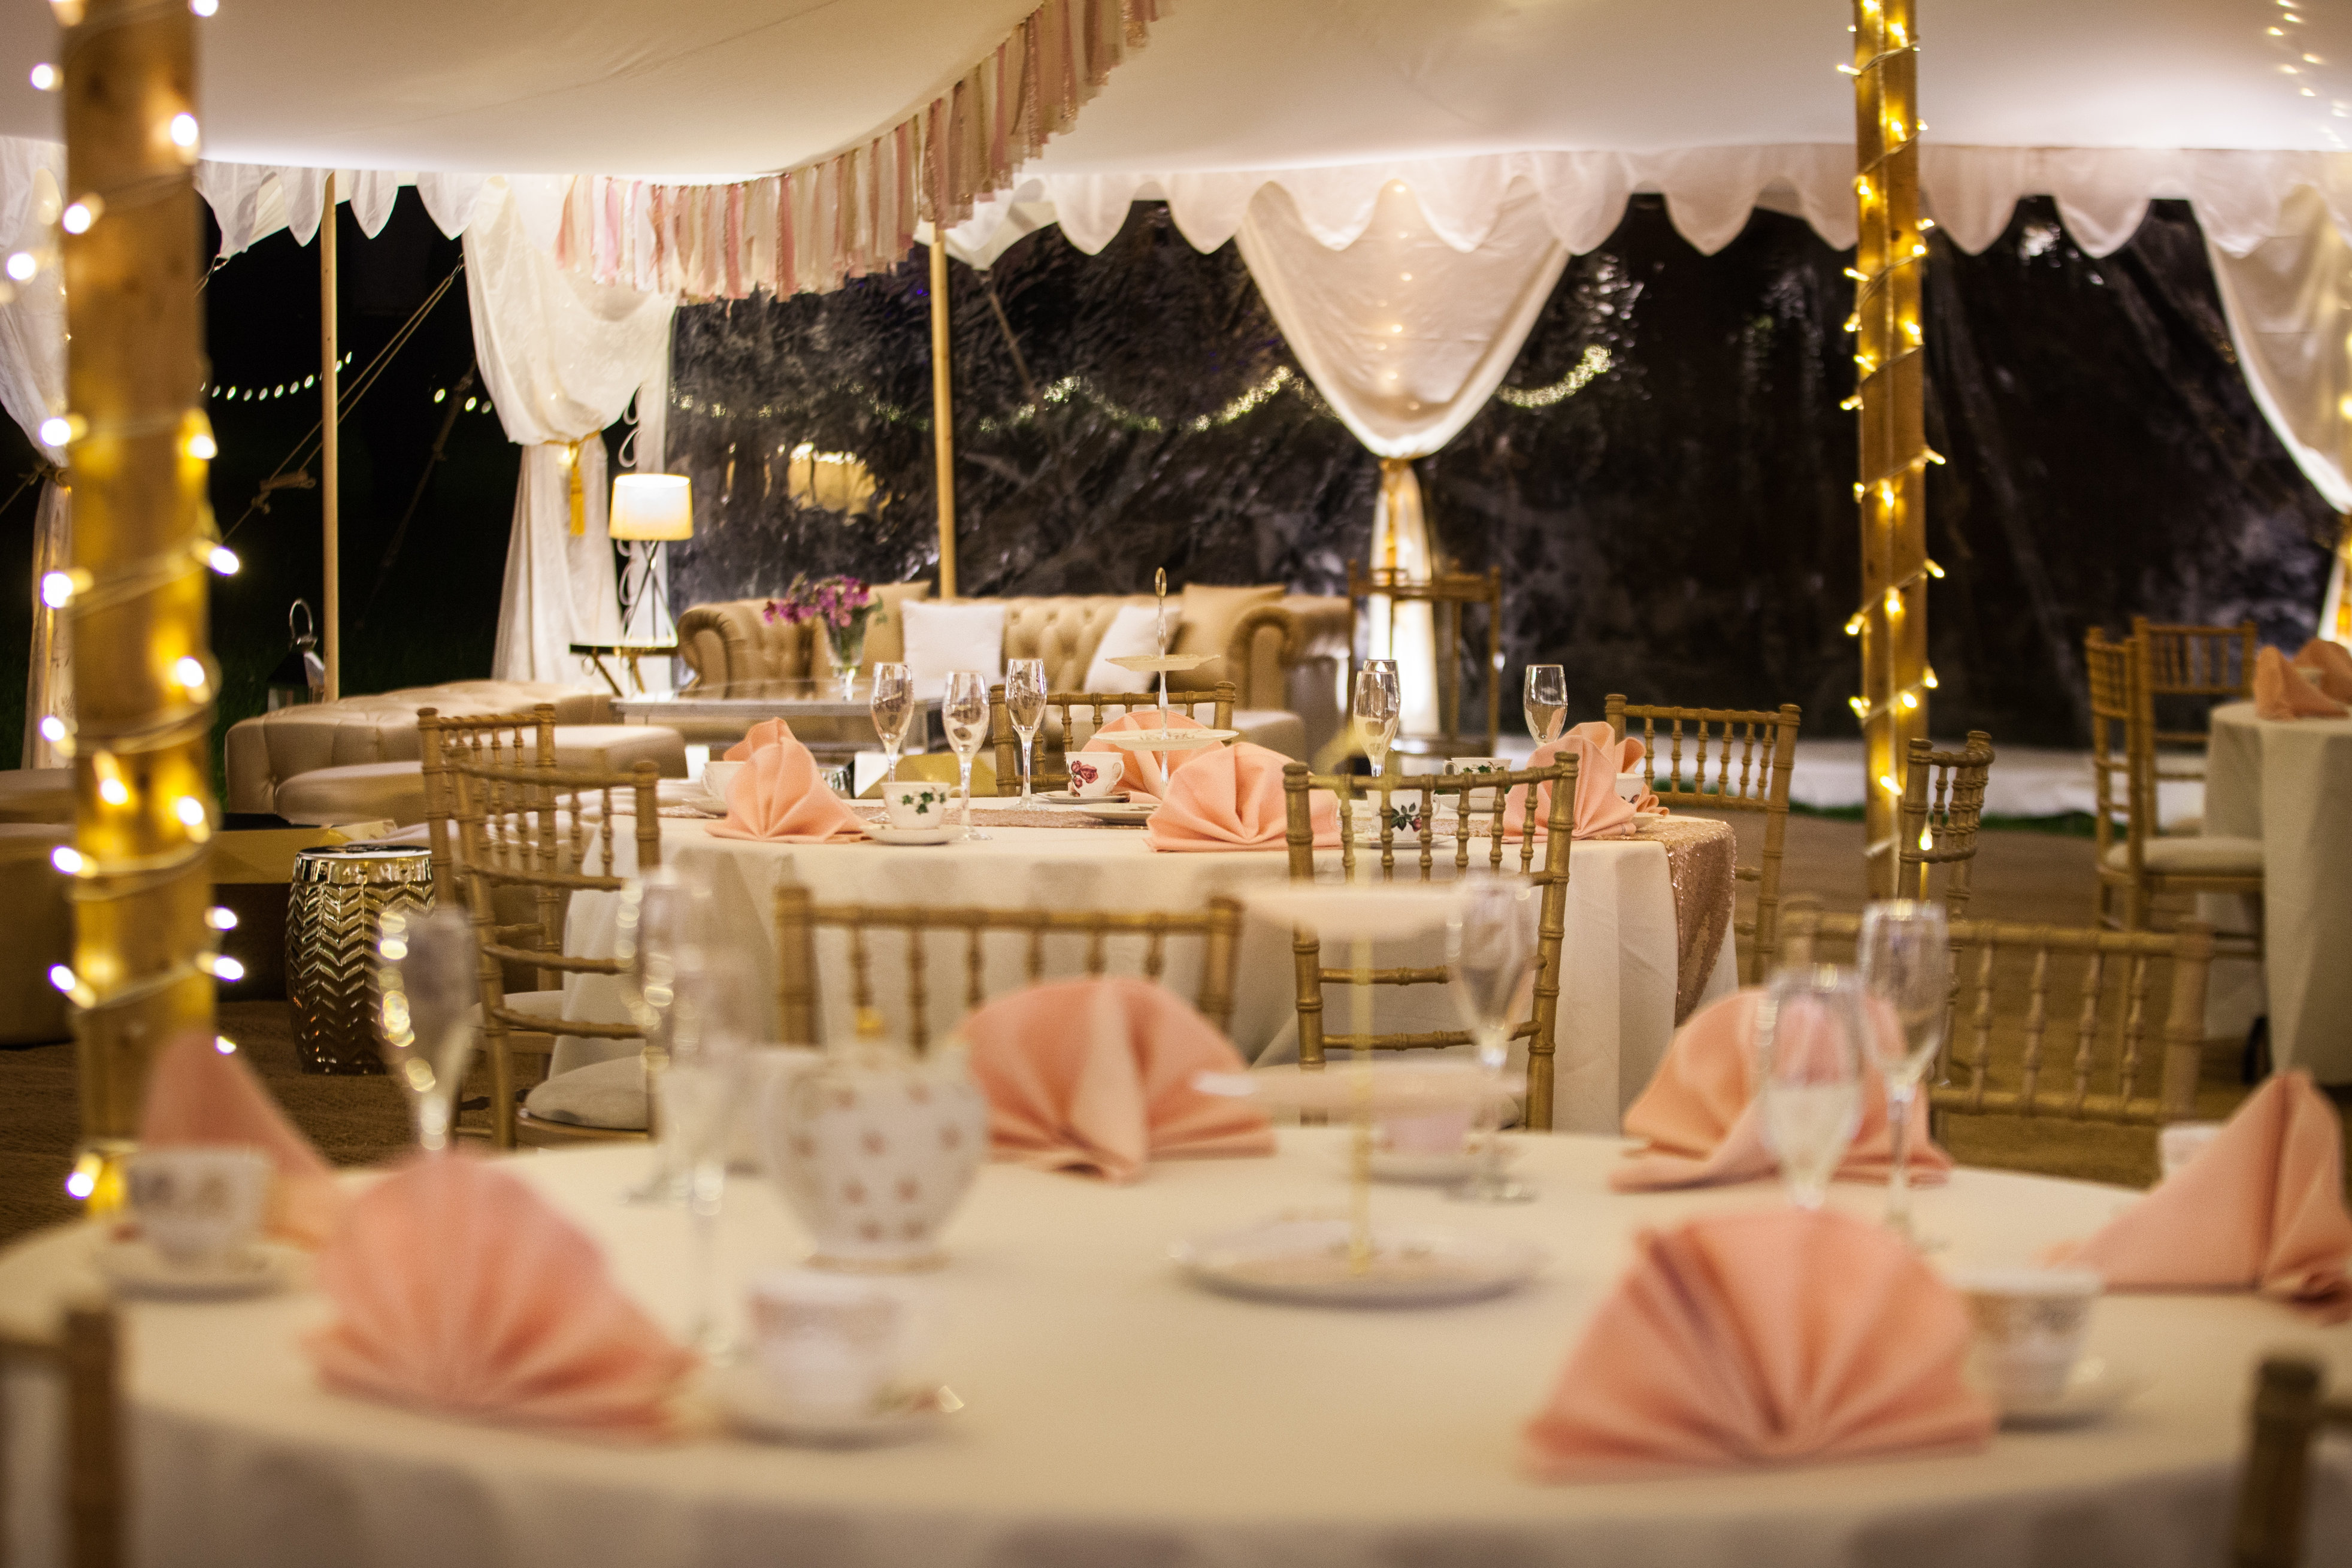 50th birthday party ideas for men & women | arabian tent company